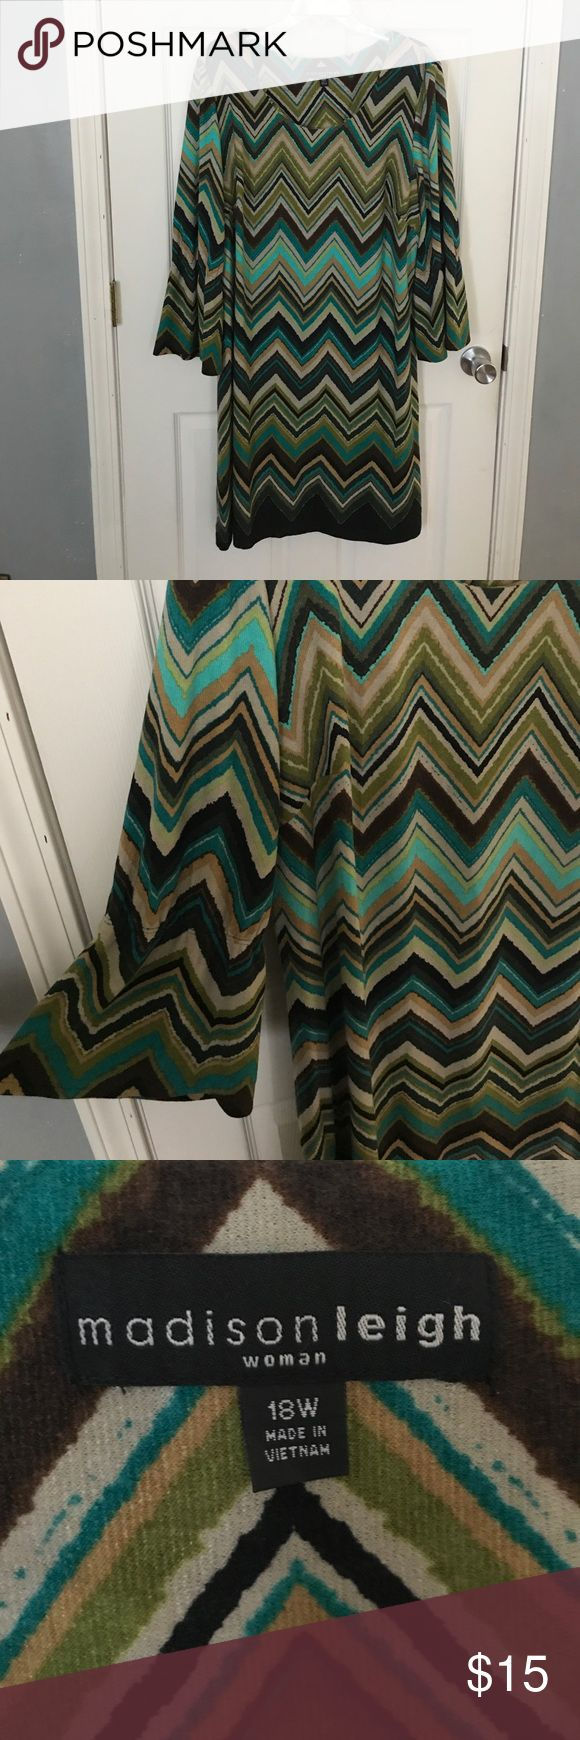 Green Chevron Dress Beautiful green, blue, and brown Chevron striped dress that has only been worn once. Thicker, almost sweater material. Very nice for fall! Super comfy. Madison Leigh Woman Dresses